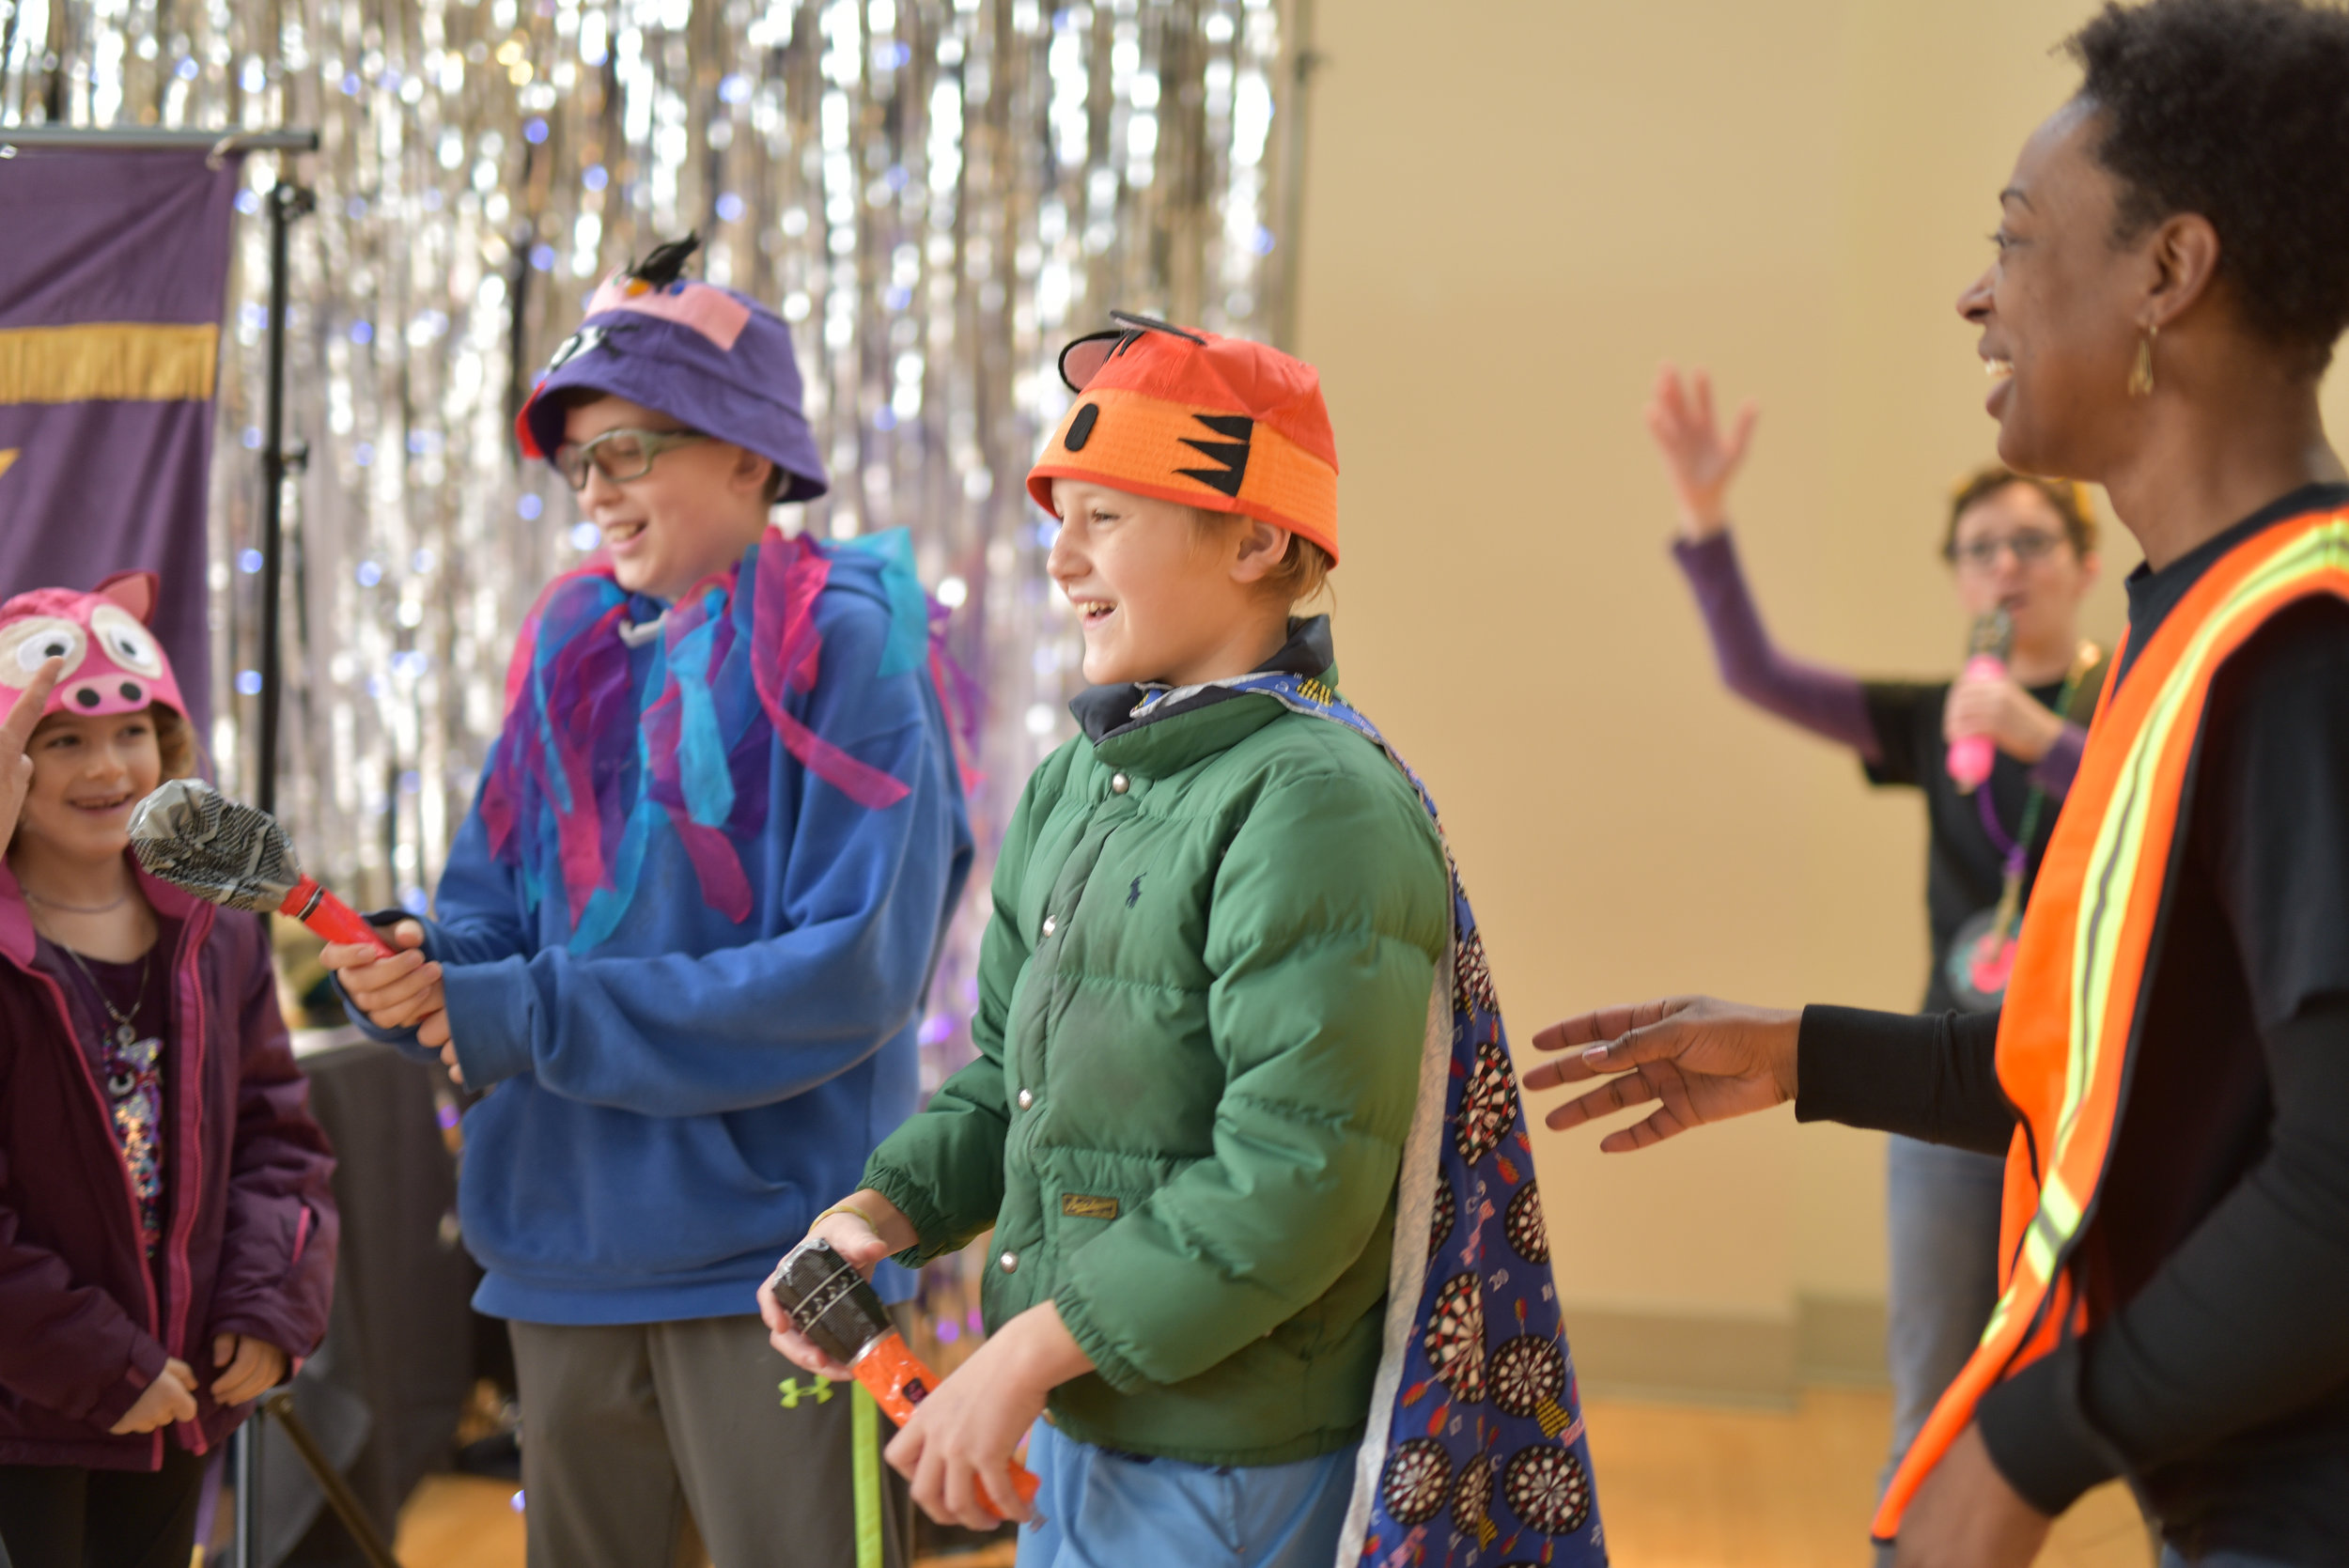 Children and actor playing during children's theatre performance